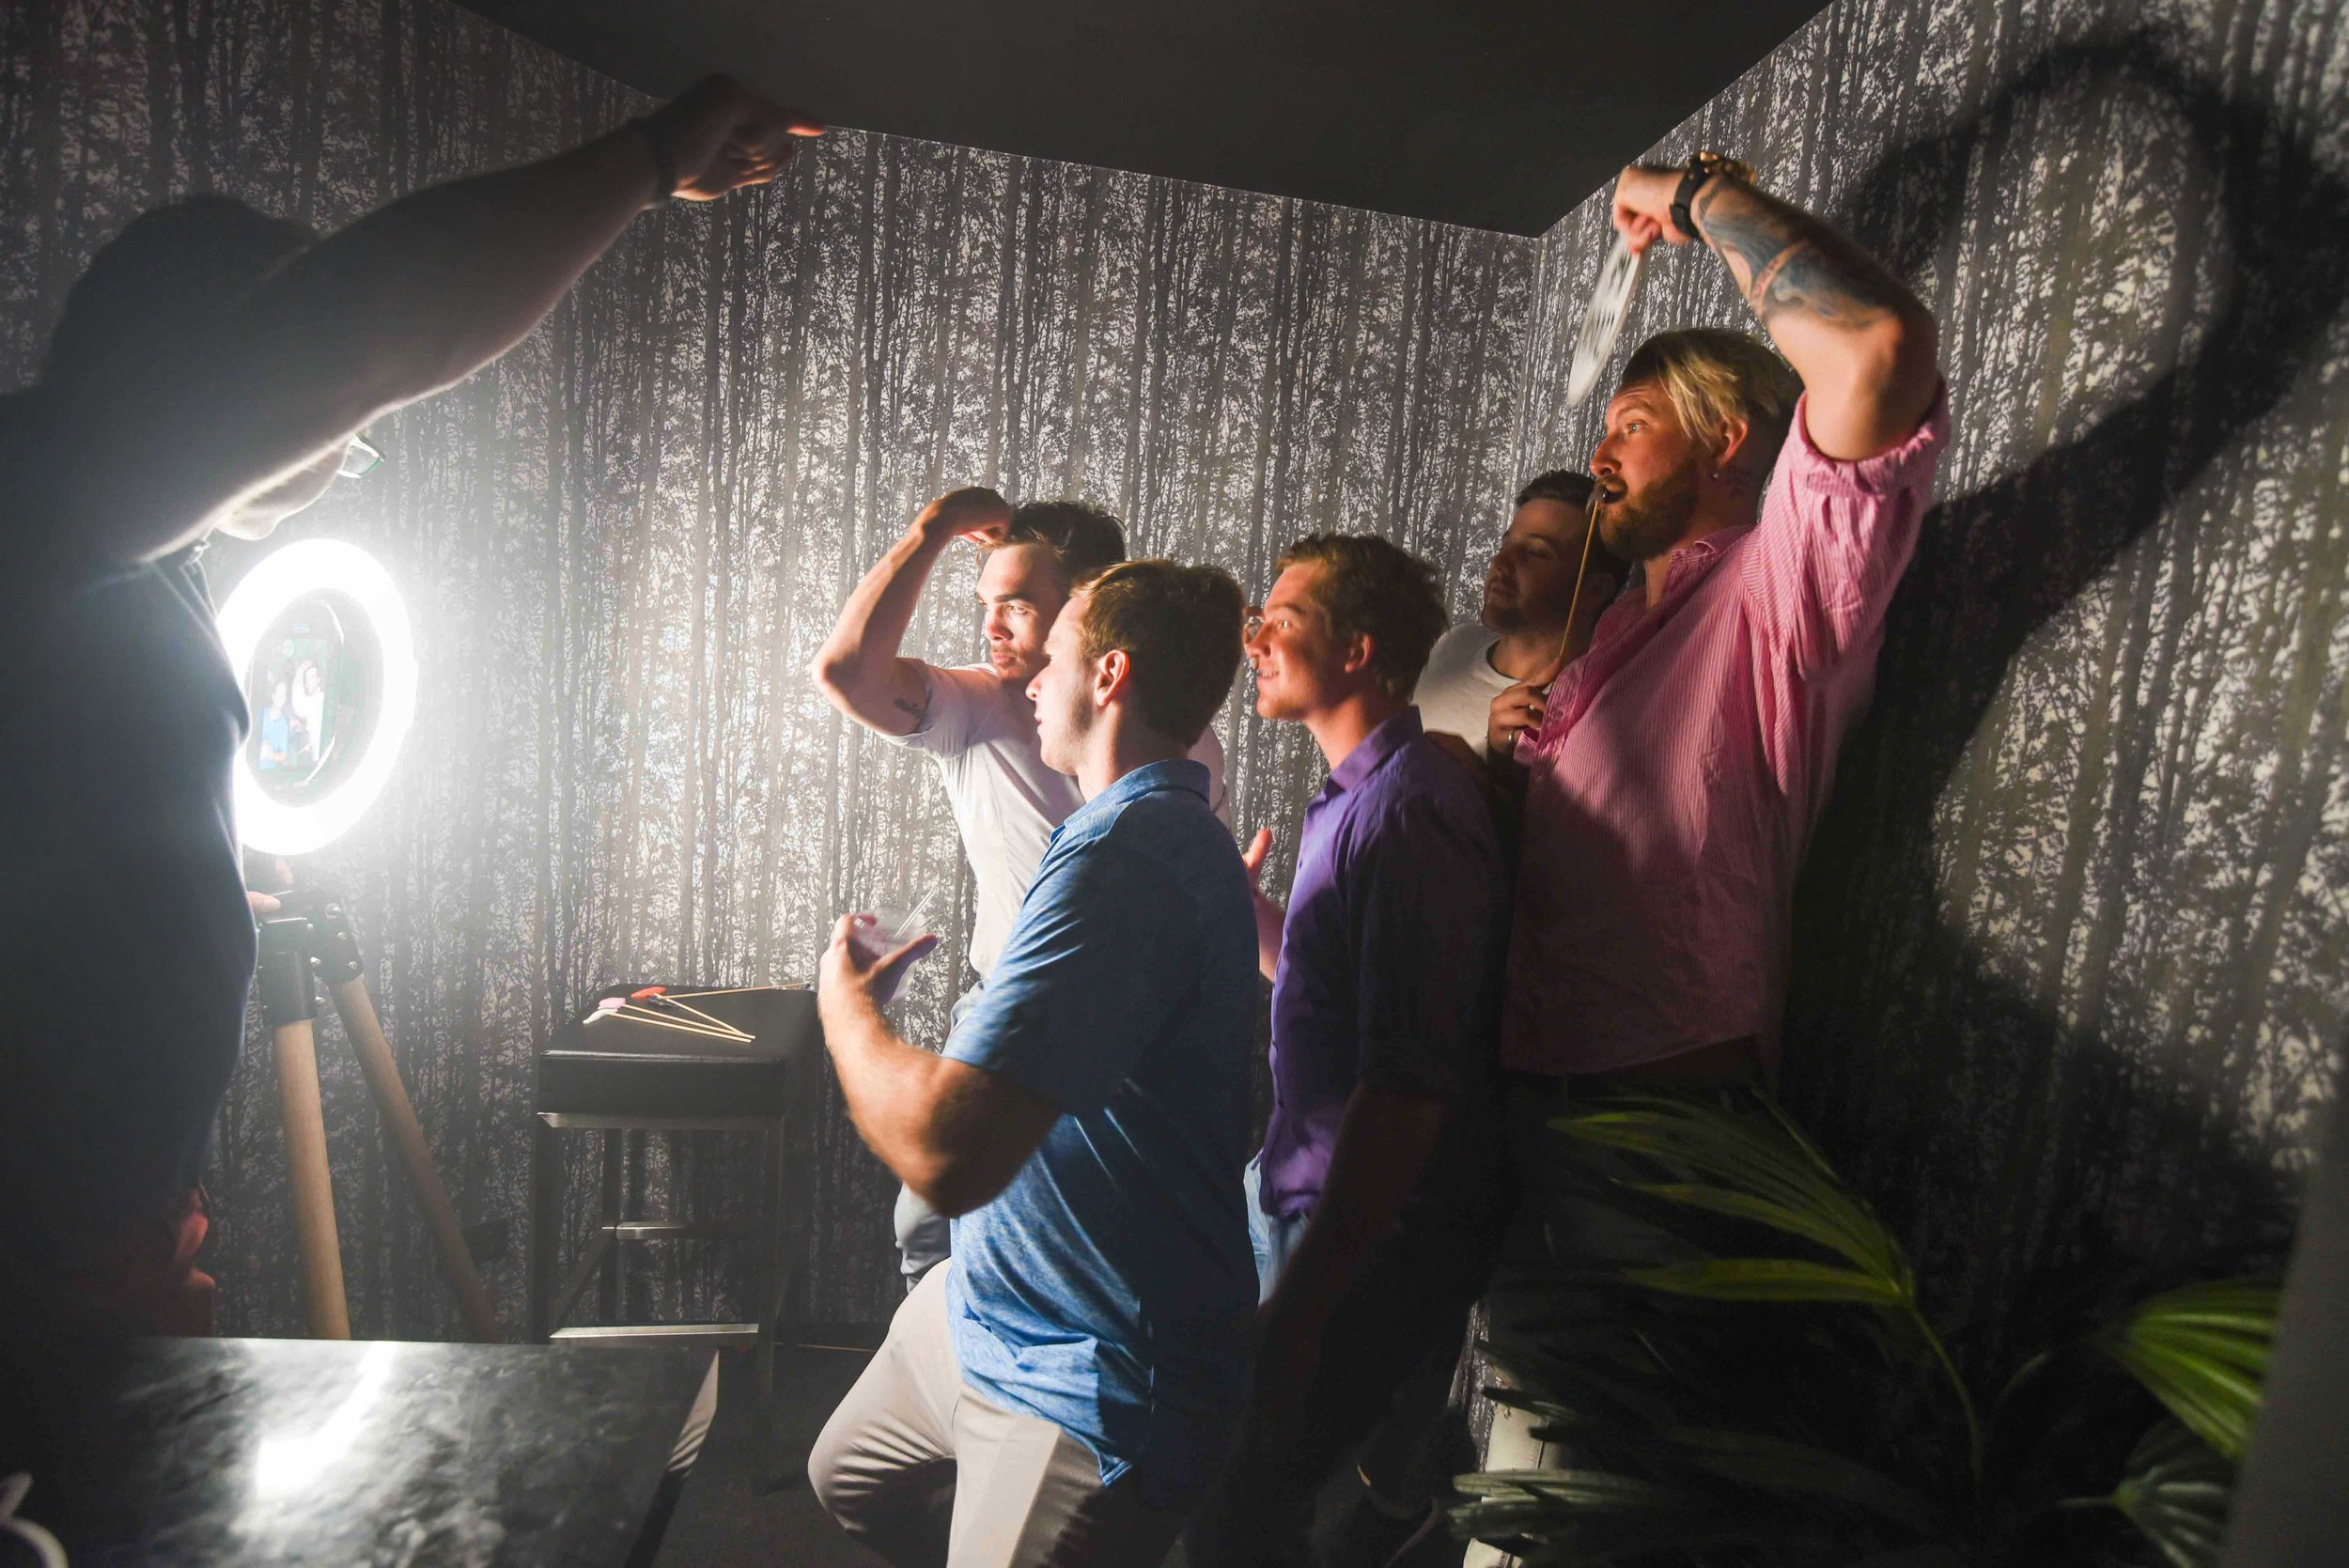 increase customer interaction - Our social photo booths are open air, stylish and are irresistibly fun.... lets be honest, who doesn't love a photo booth. Keep your guests entertained and coming back again and again.The more time they spend interacting with your brand, the more likely they are to remember it.